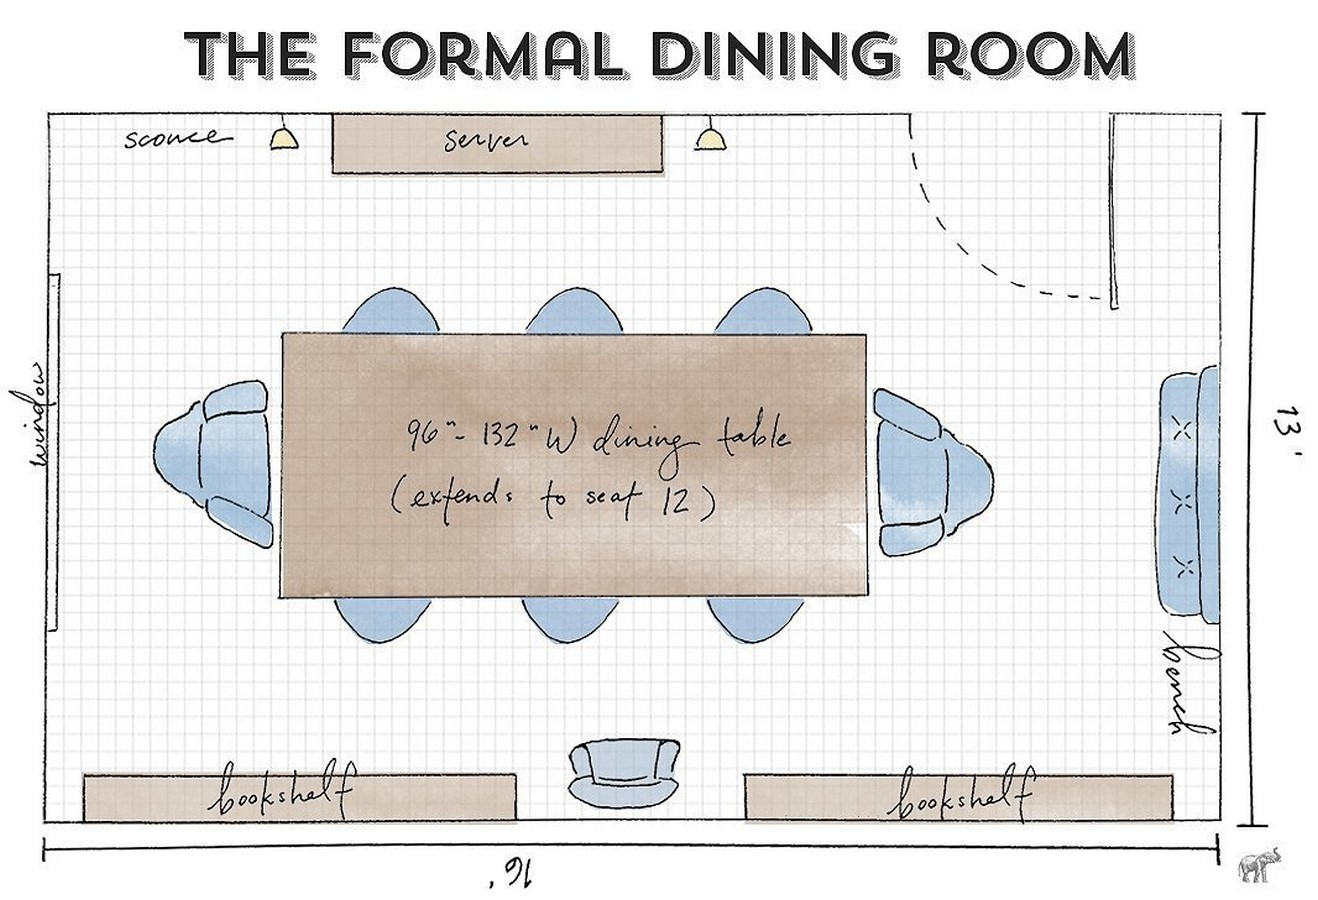 10 Dining rooms ideas that can enhance the space - Sheet1